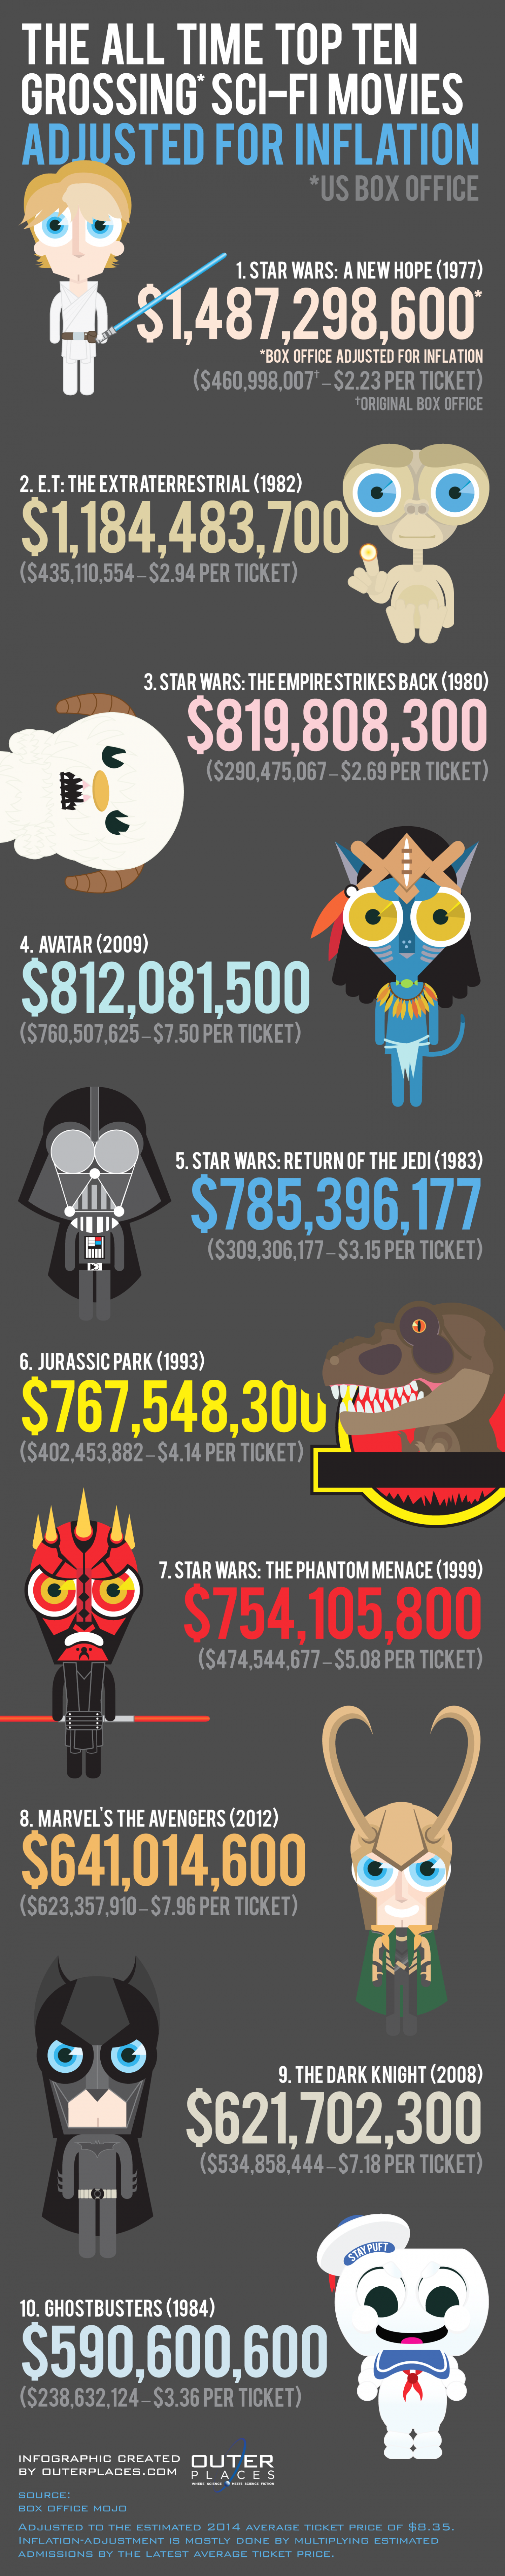 The All Time Top Ten Grossing Sci-Fi Movies Adjusted For Inflation Infographic